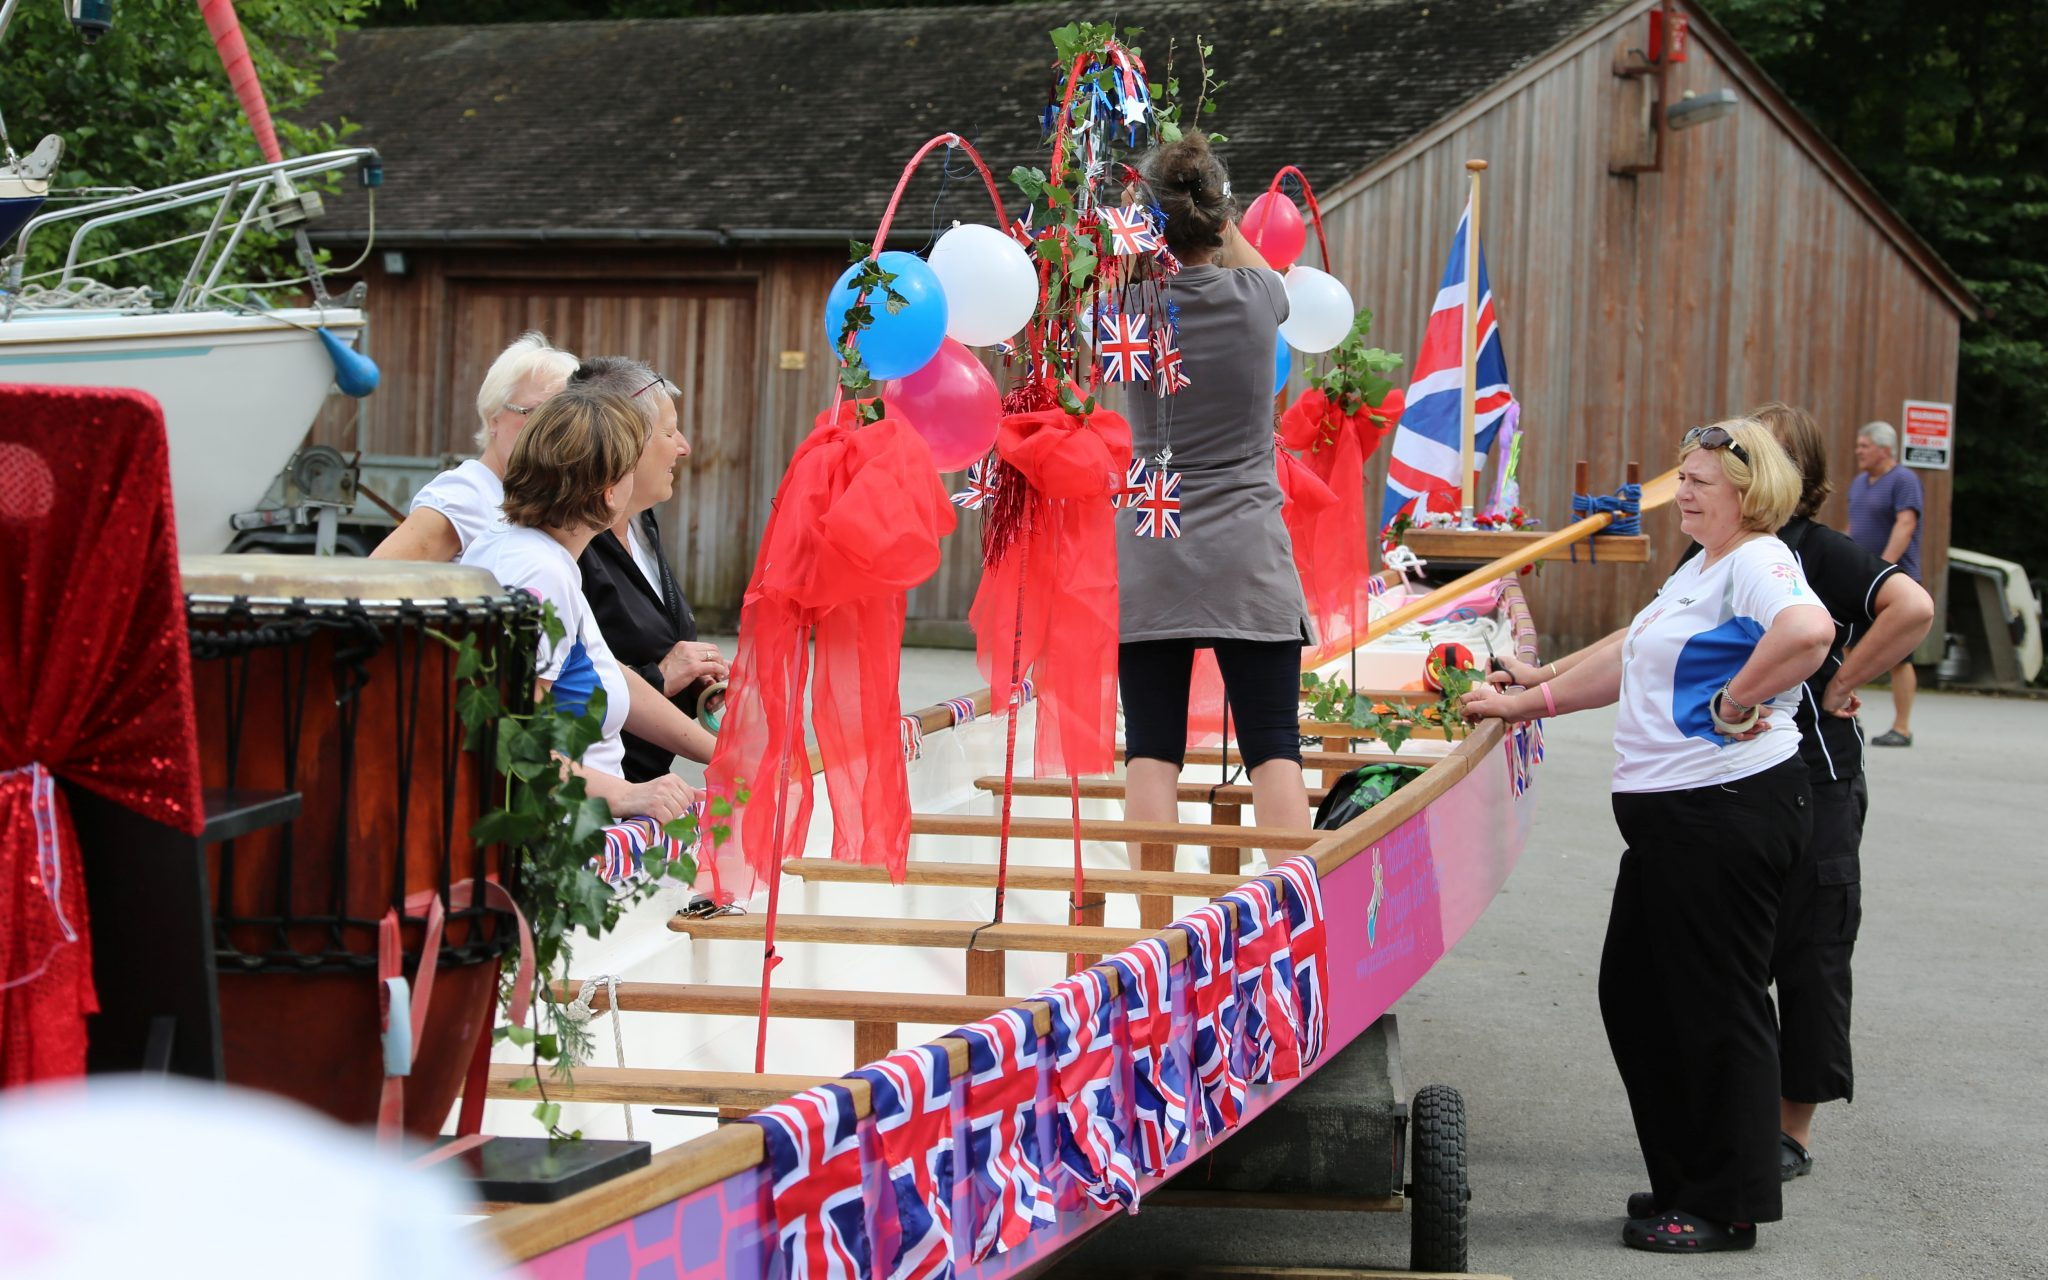 2011 and another best dressed boat competition organised by the Lake District Boat Club. Having paddled in the Queen's Jubilee Pageant on the Thames there could only be one theme.